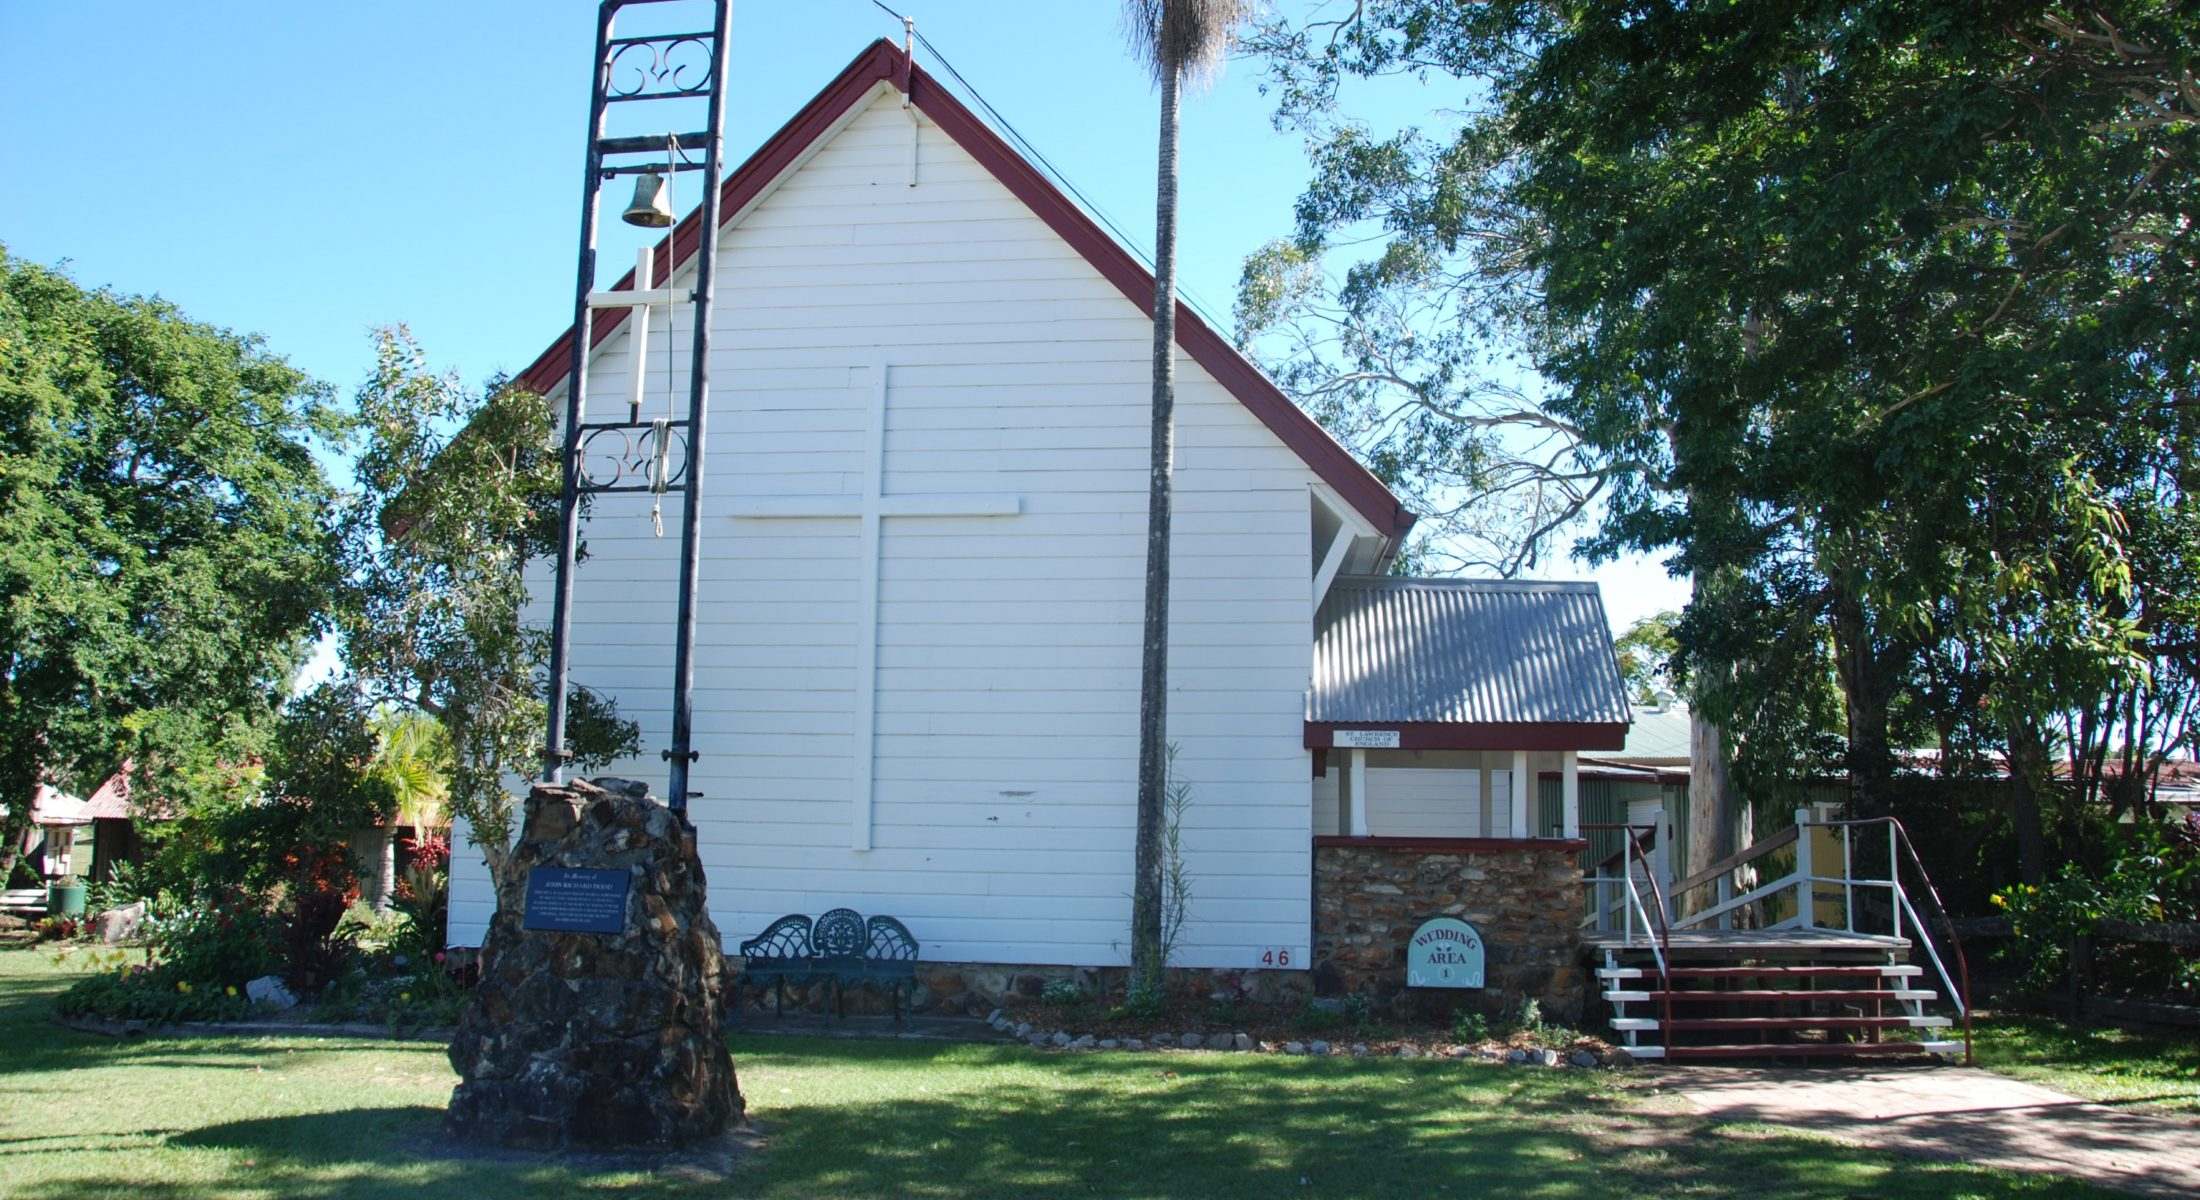 Caboolture Historical Village Moreton Bay Region Garden And Church Wedding Venue